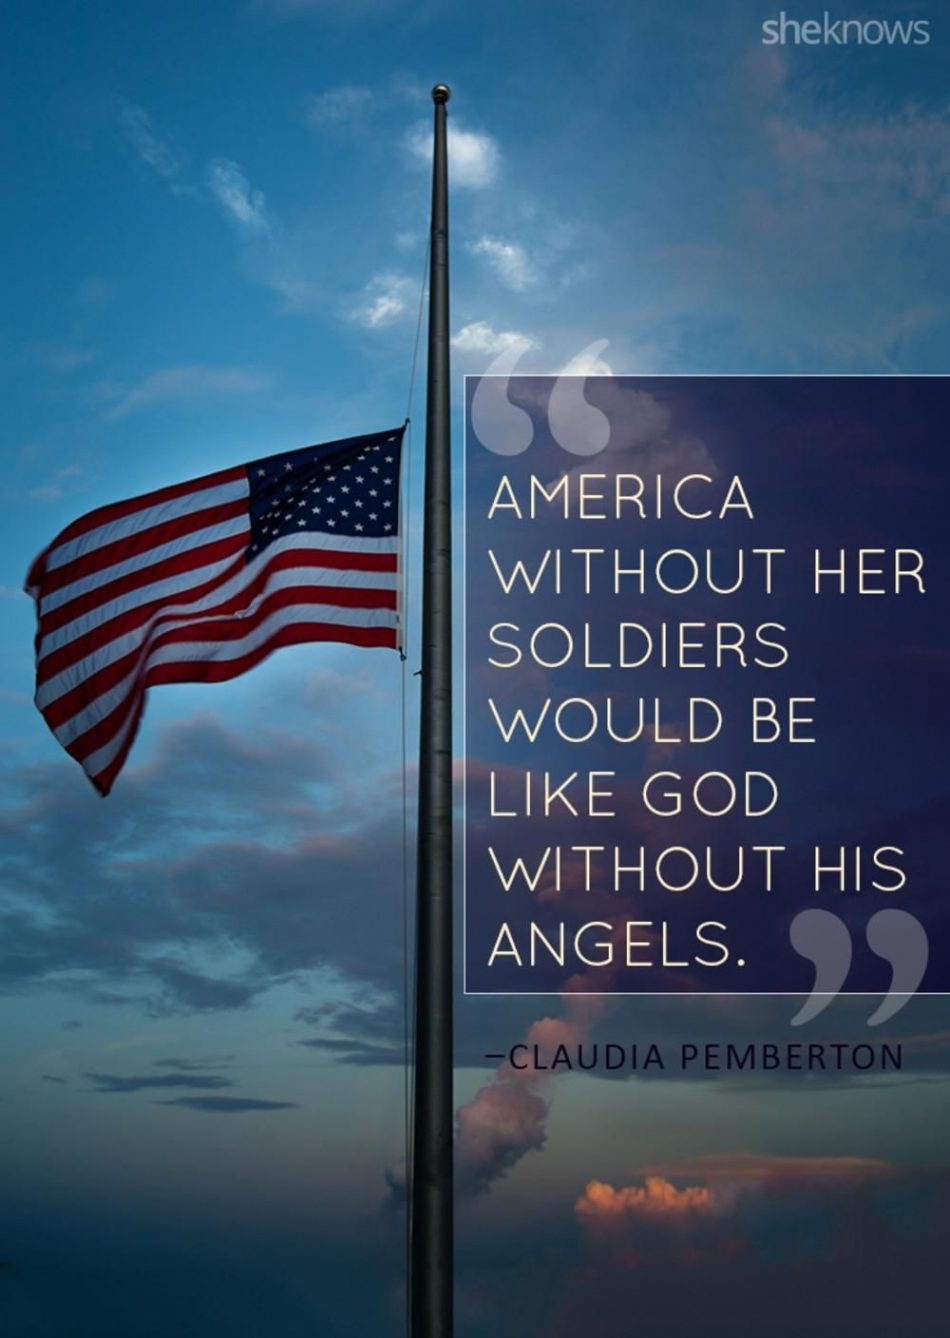 Click for more patriotic quotes for the red, white and blue